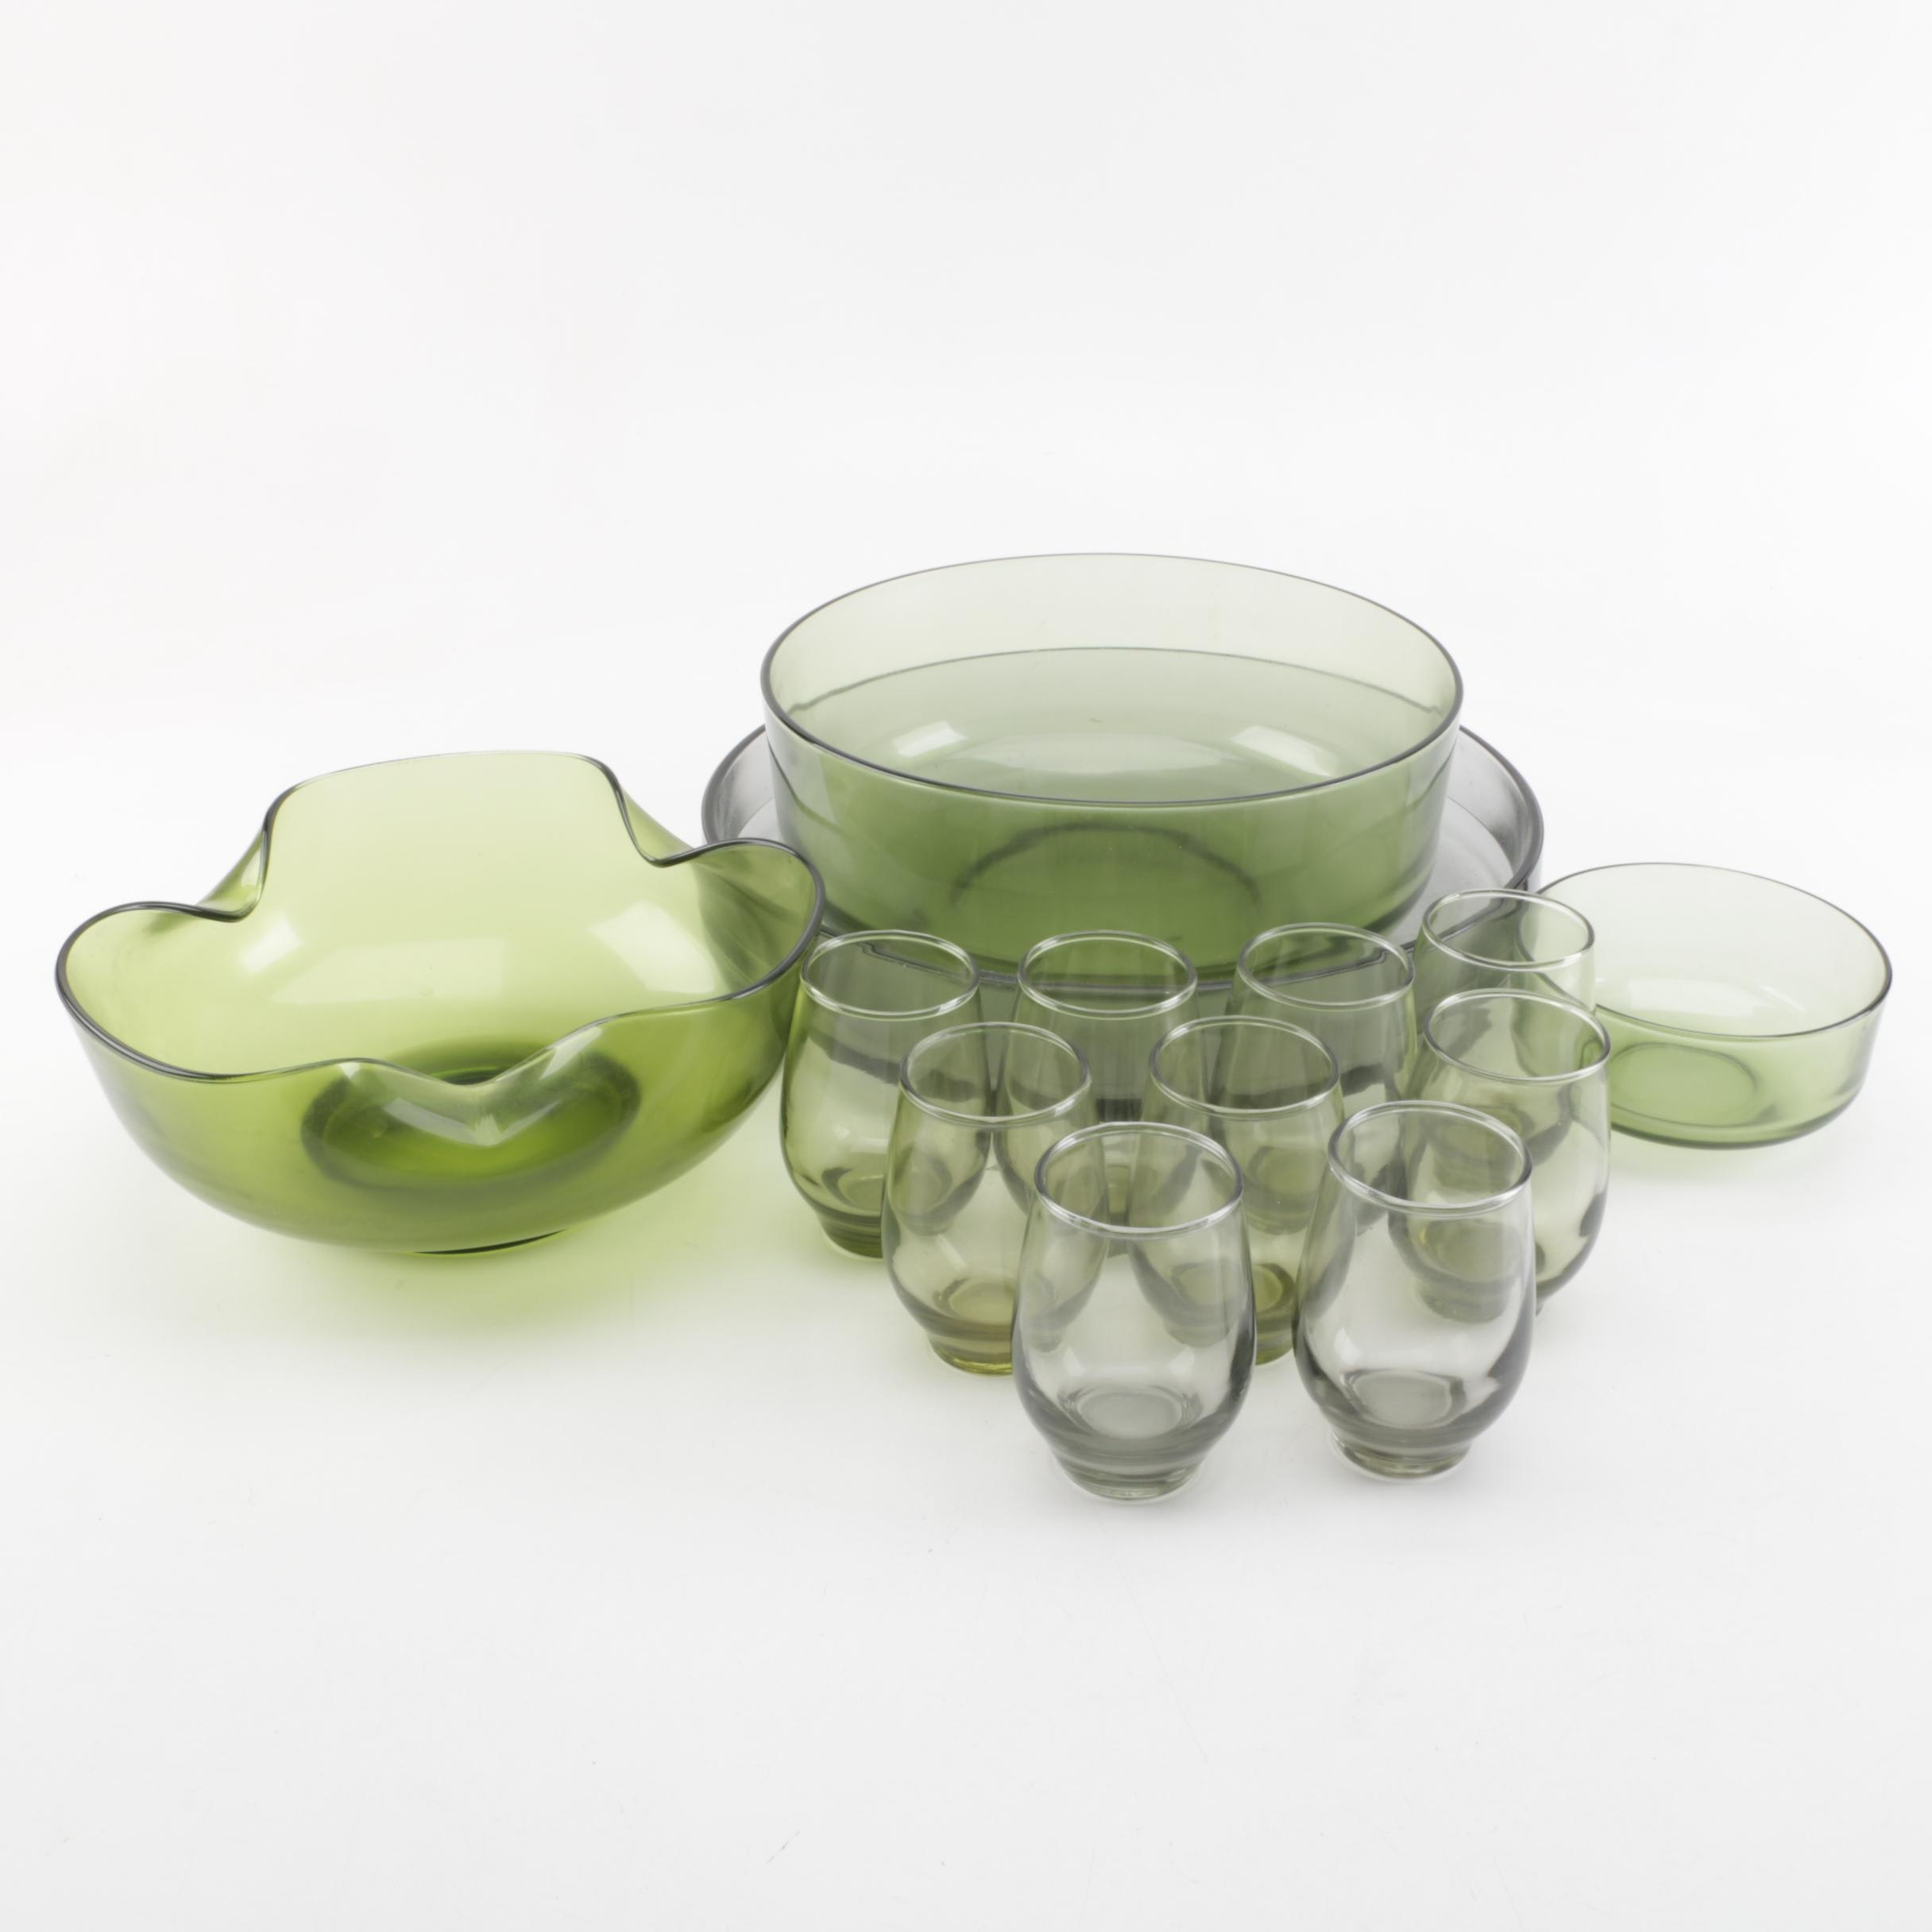 """Libbey """"Tempo"""" Tumblers and Green Serving Bowls"""